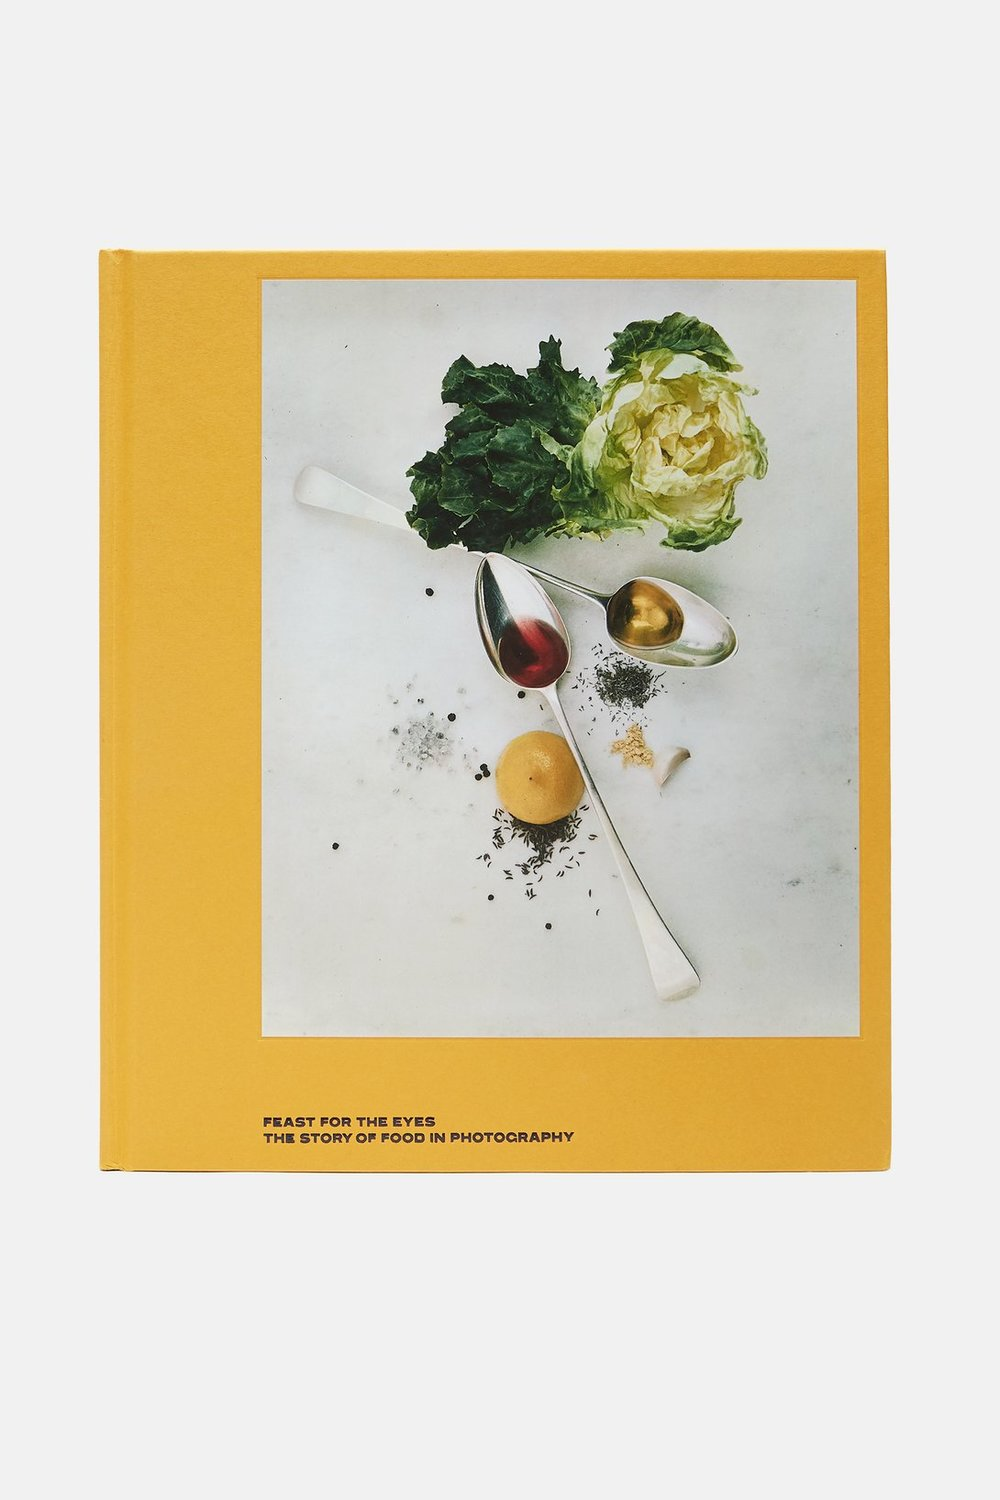 "Feast For The Eyes ""The Story Of Food In Photography"" featuring artists from all eras—Roger Fenton, Nickolas Muray, Edward Weston, Irving Penn, Stephen Shore, Laura Letinsky, Wolfgang Tillmans, Nobuyoshi Araki, and Martin Parr to name a few."